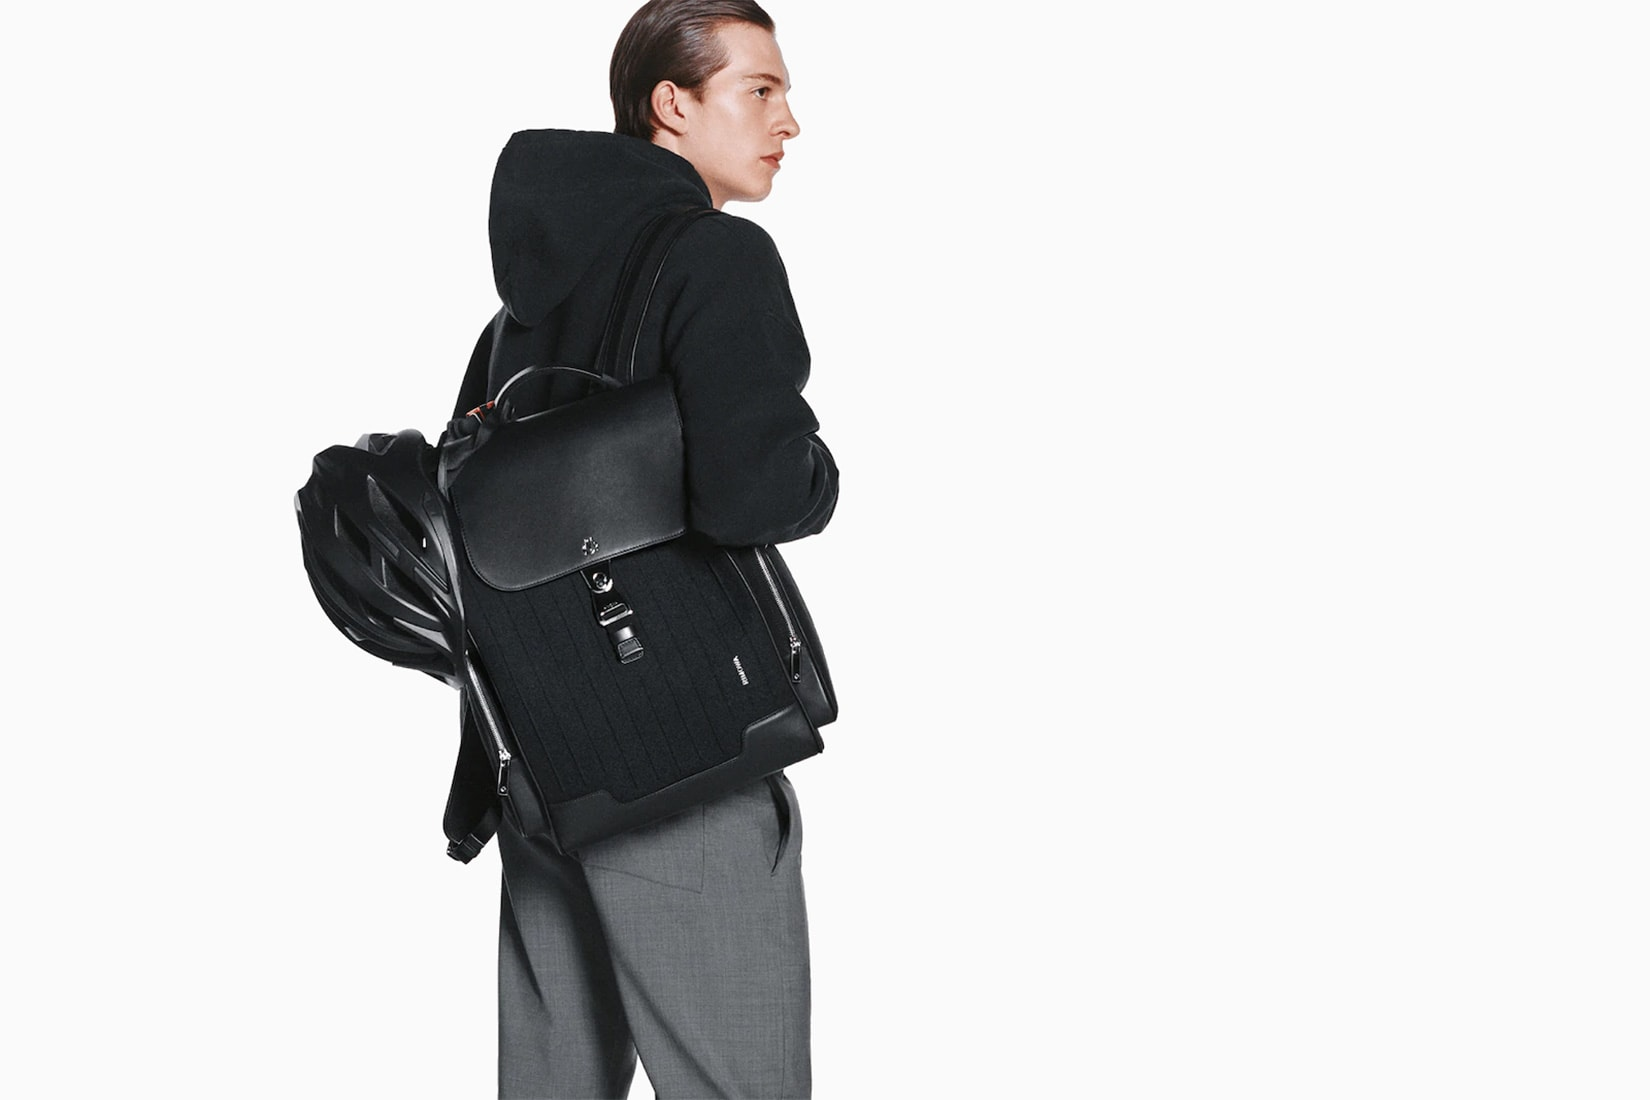 rimowa never still large backpack review - Luxe Digital